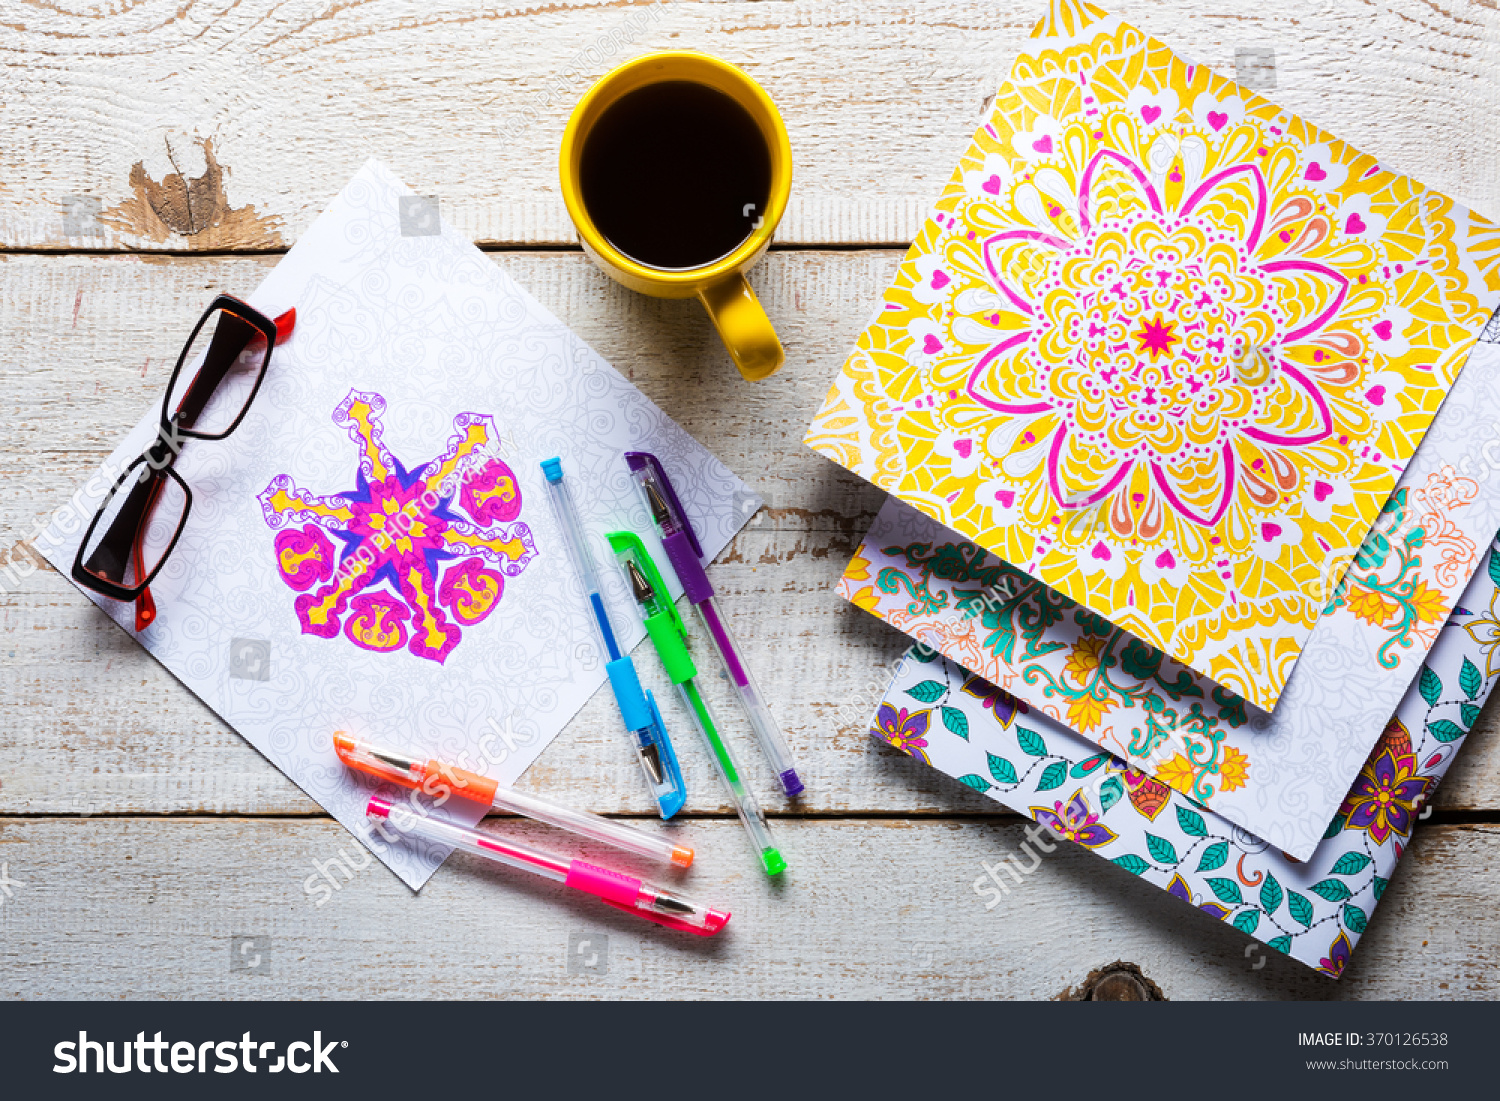 Adult Coloring Books Stress Relieving Trend Mindfulness Concept